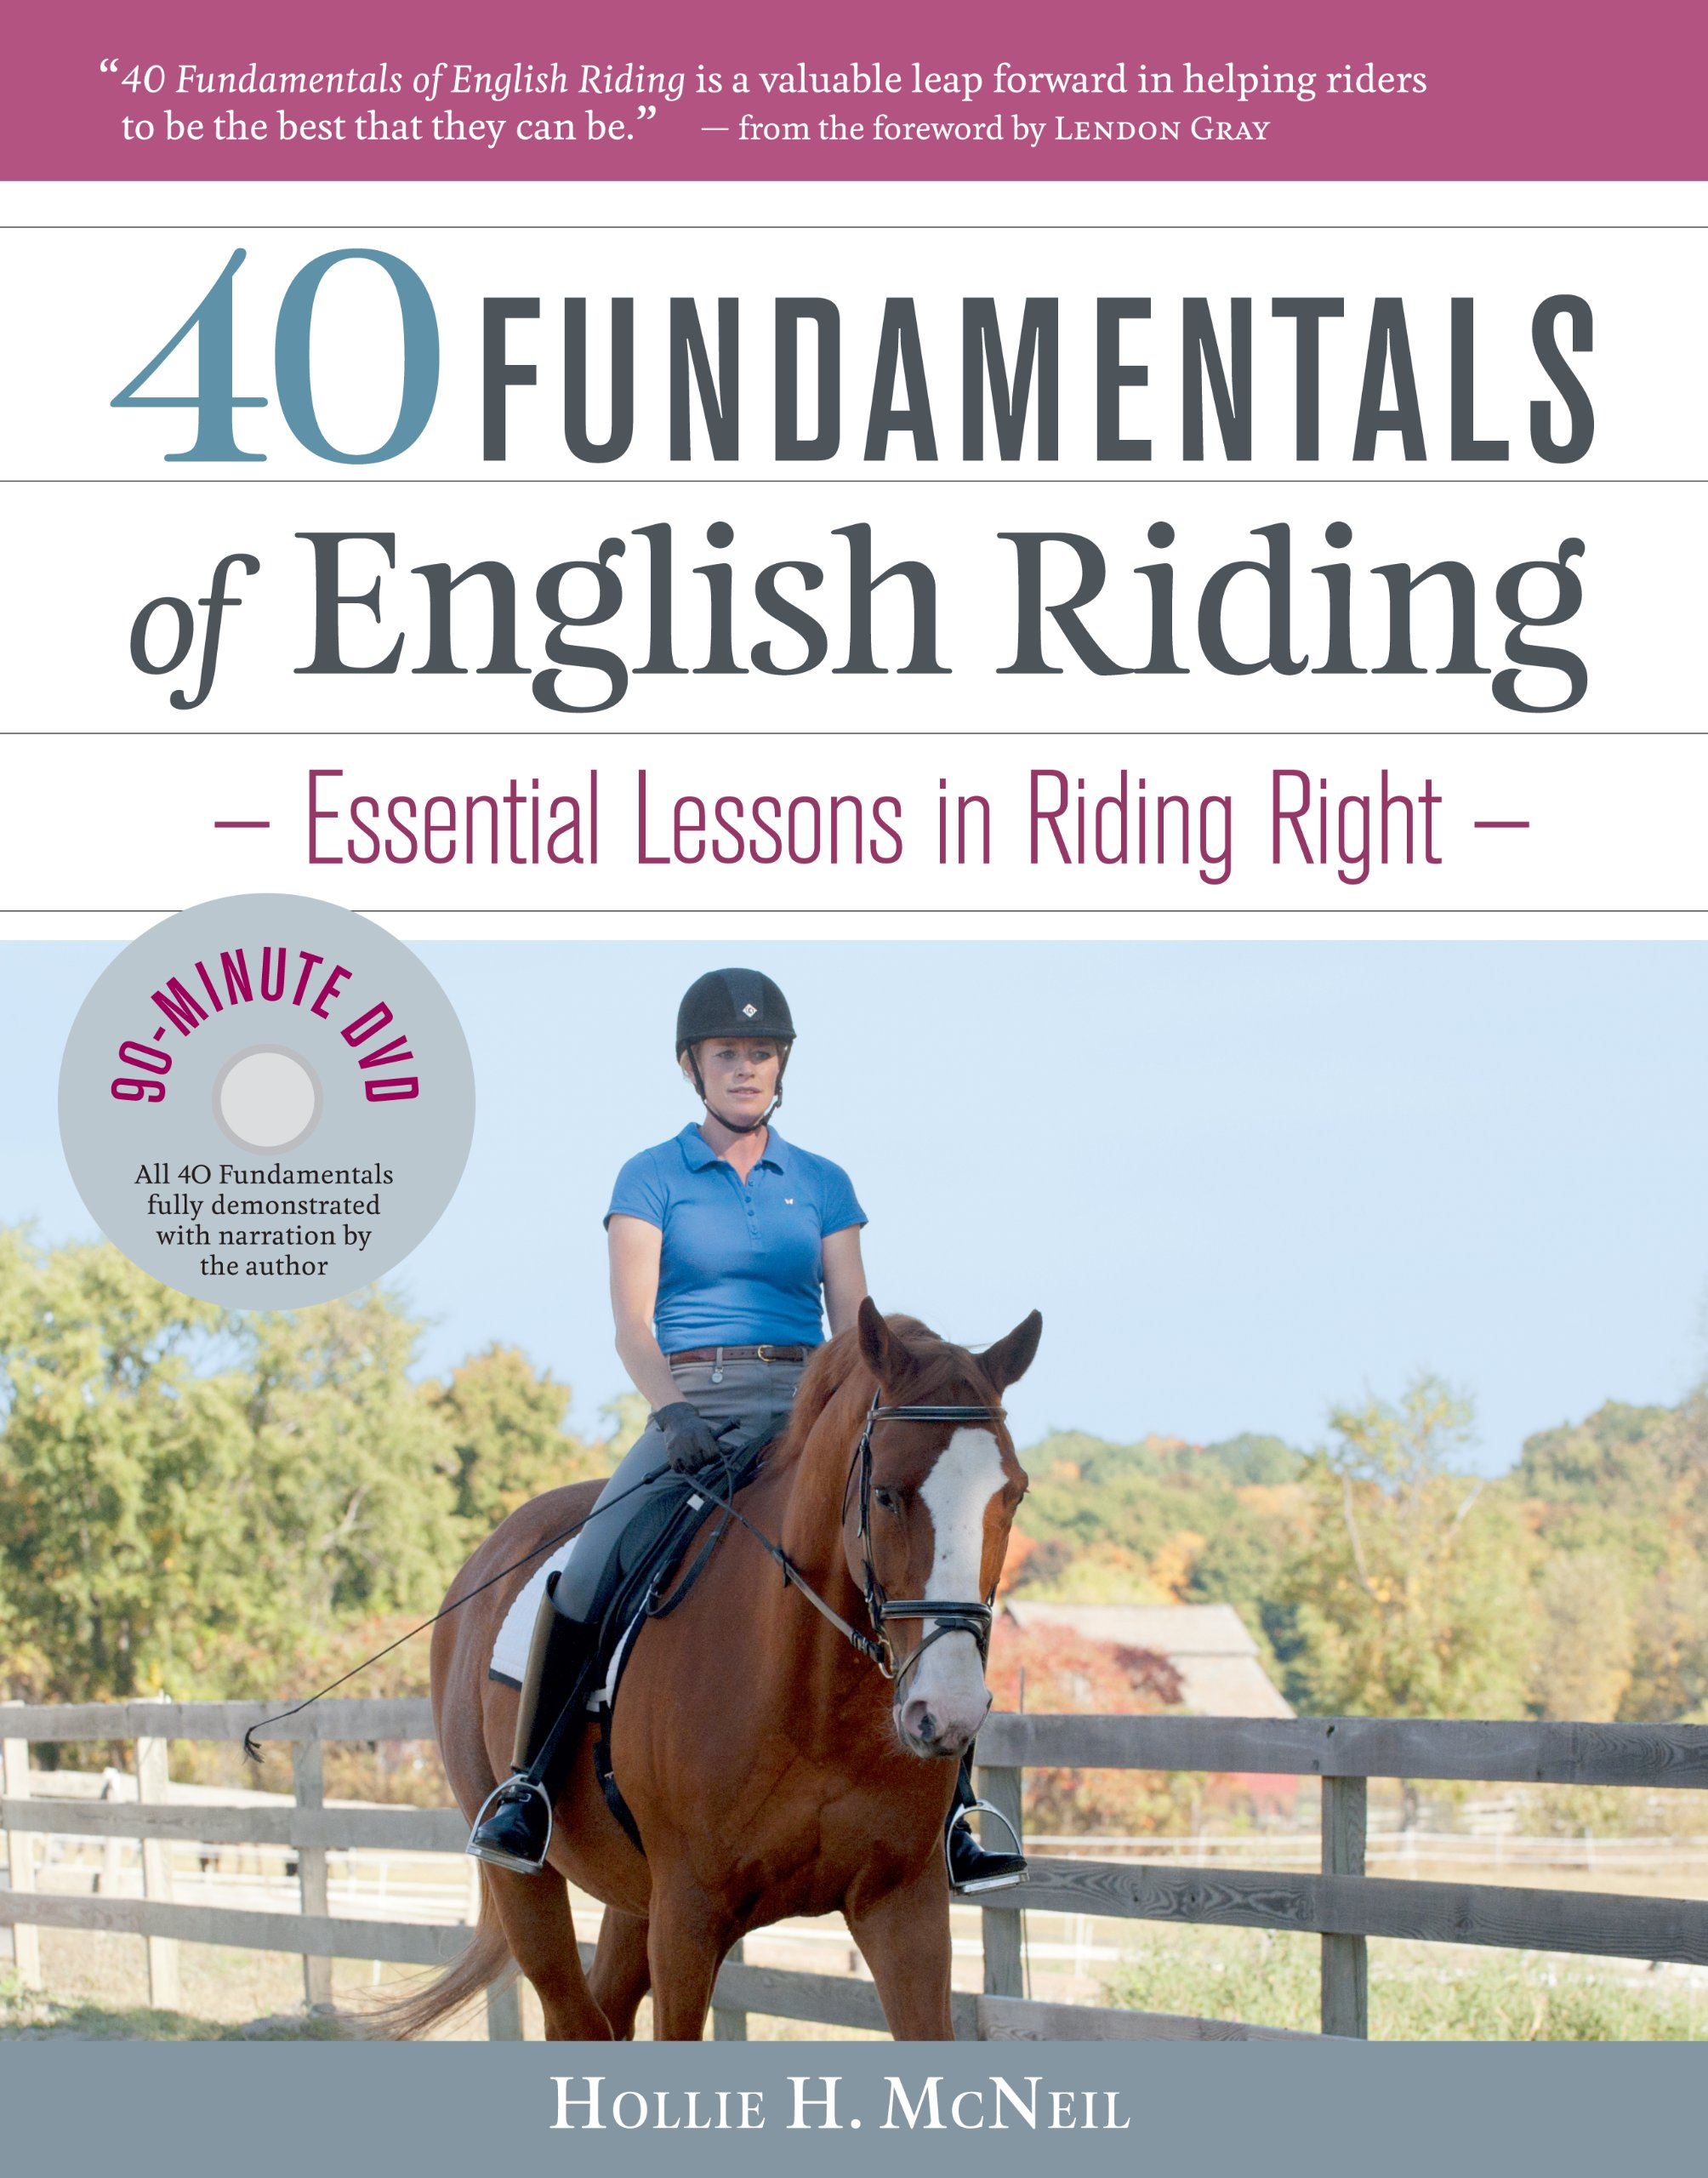 40 fundamentals of english riding essential lessons in riding